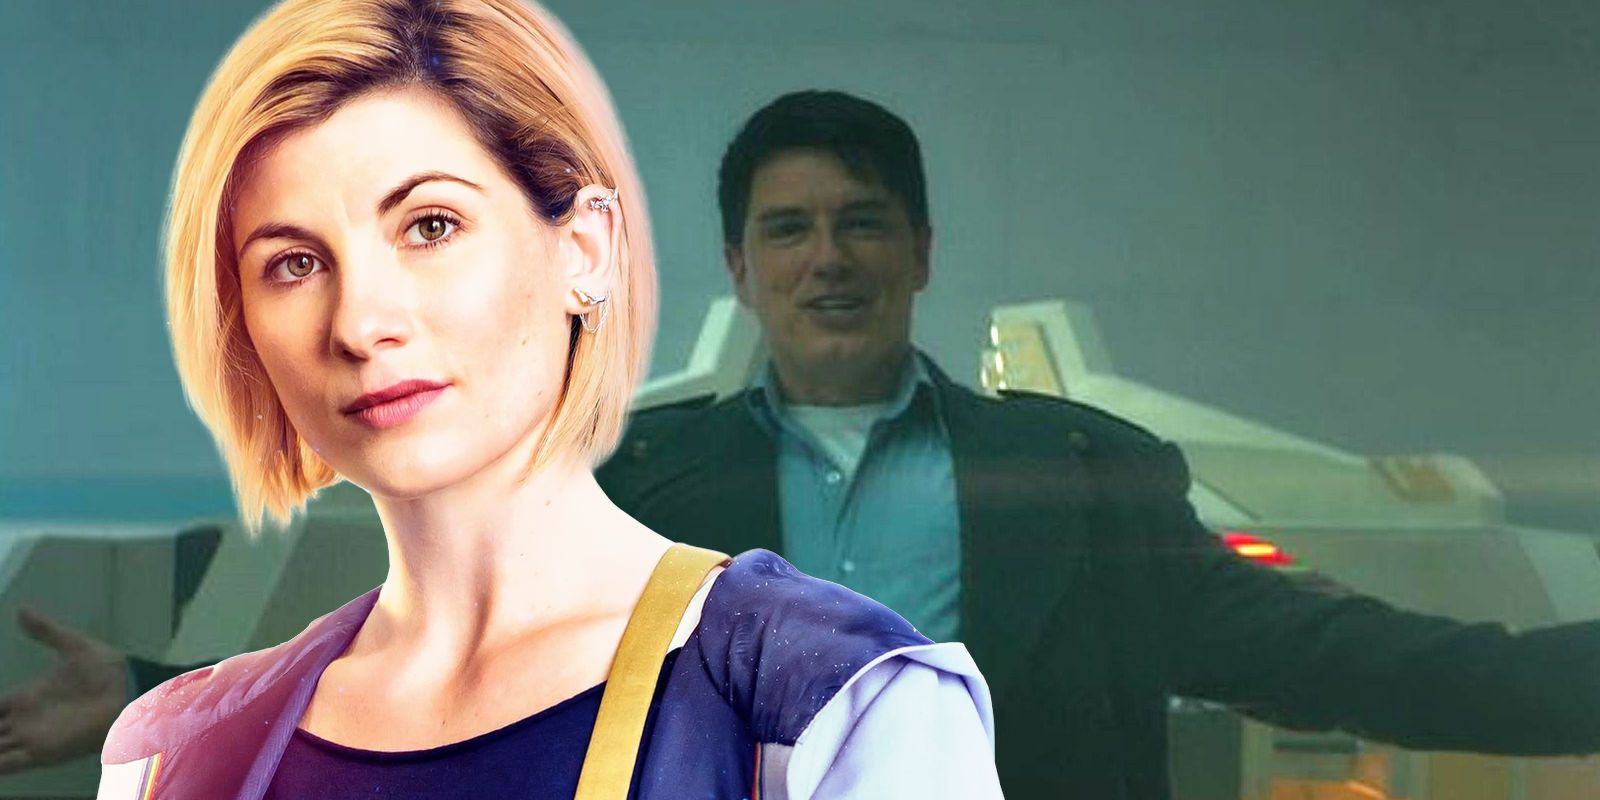 Doctor Who: Captain Jack's Return & Season 12 Future Explained